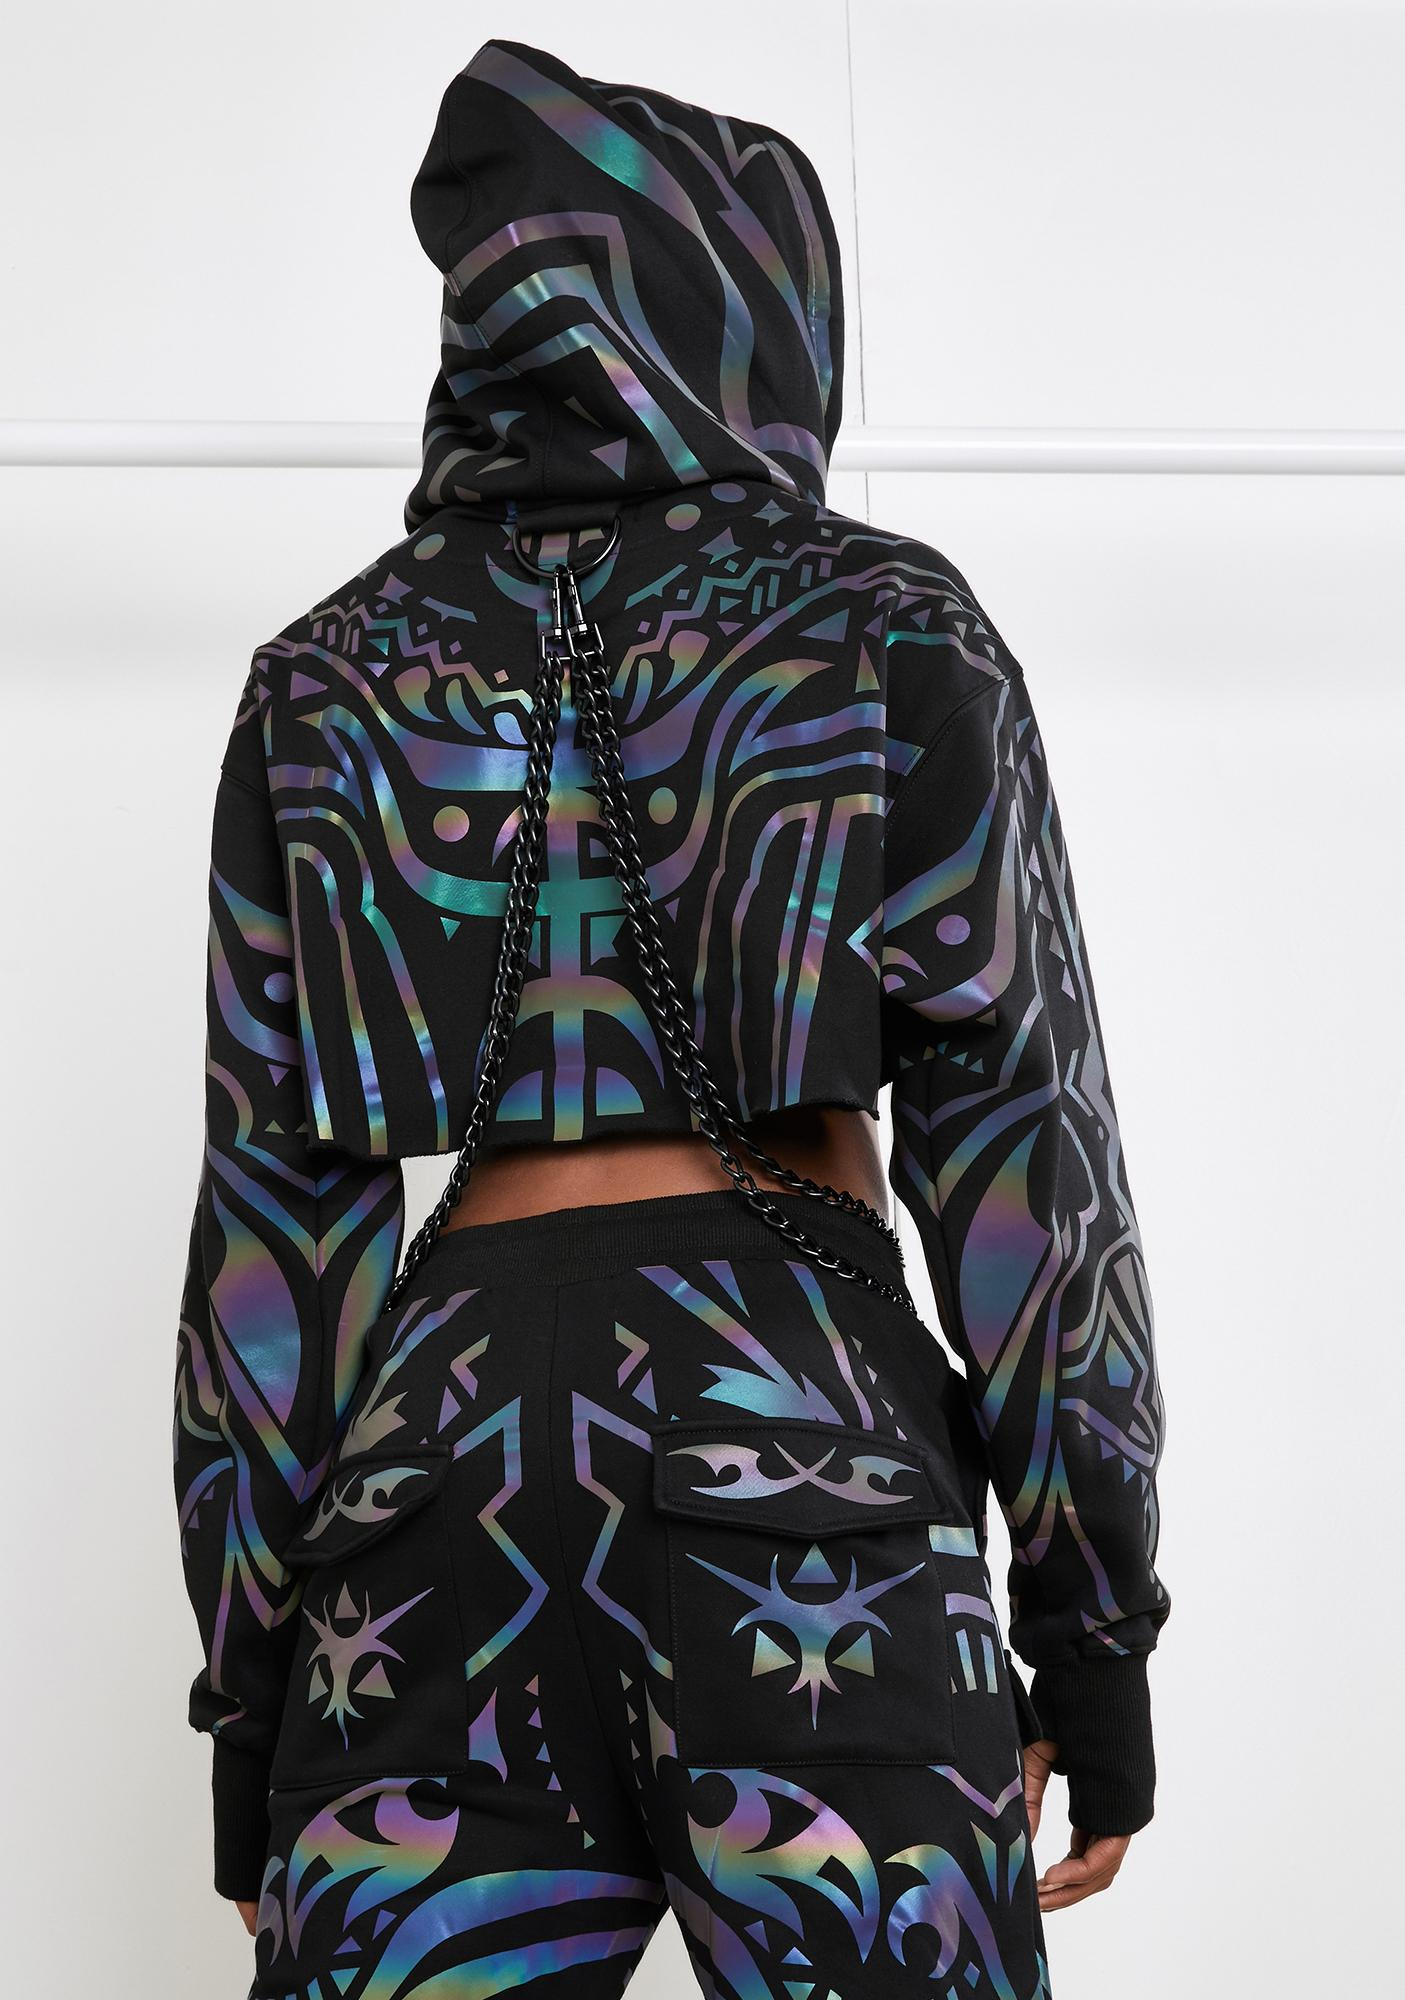 Club Exx Moon Labyrinth Reflective Chain Hoodie